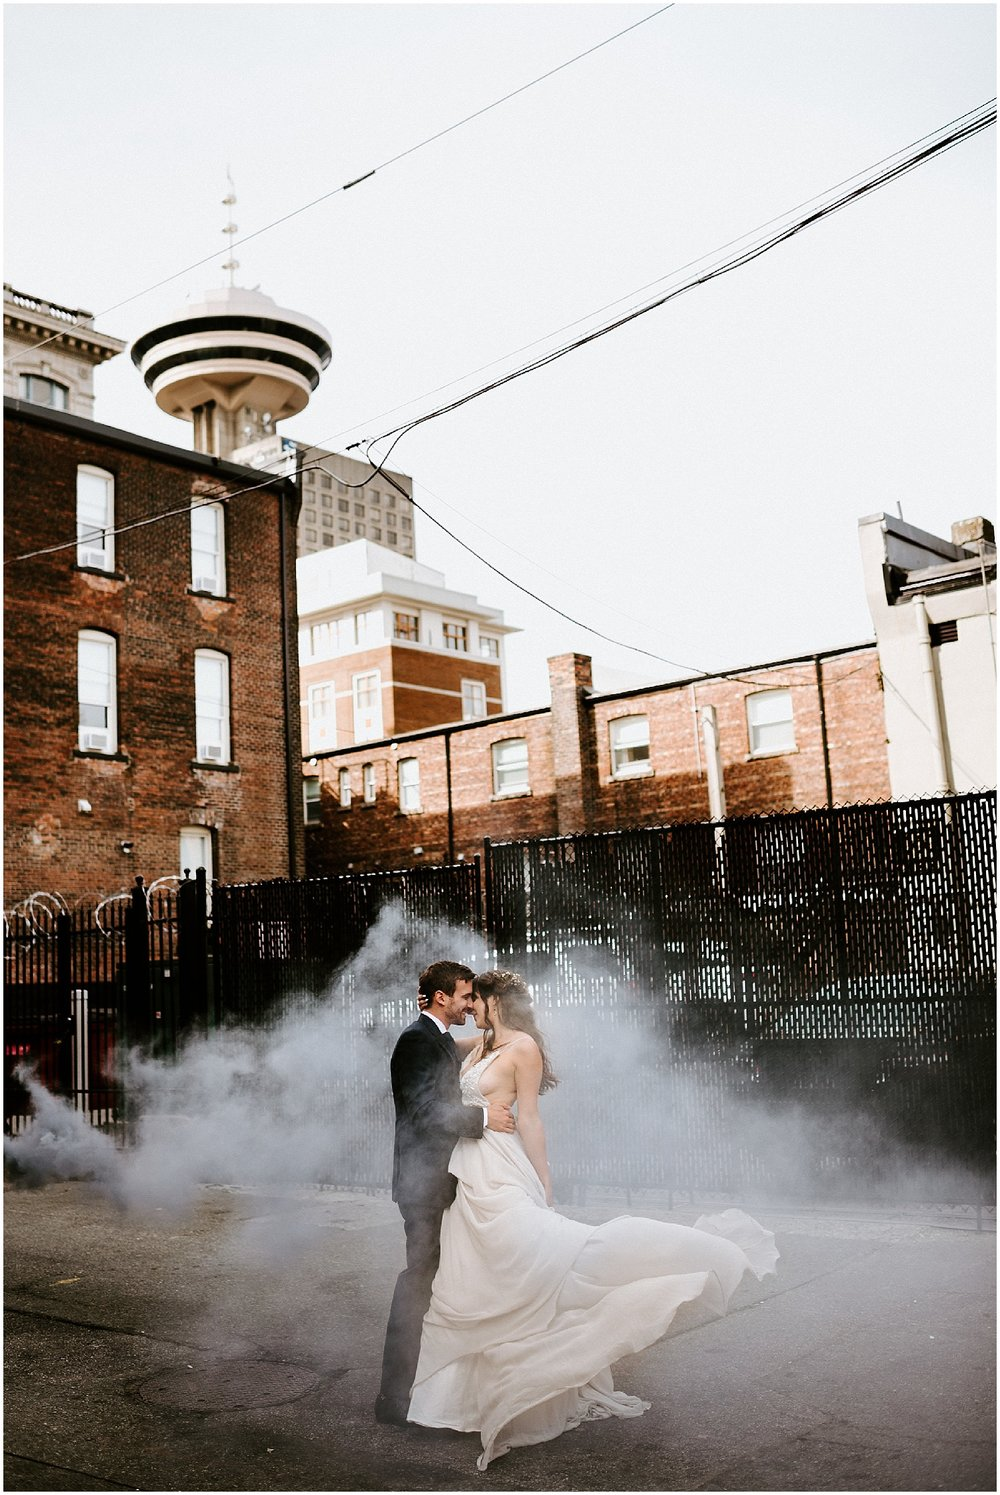 downtown vancouver urban wedding photo back alley couple manhole steam